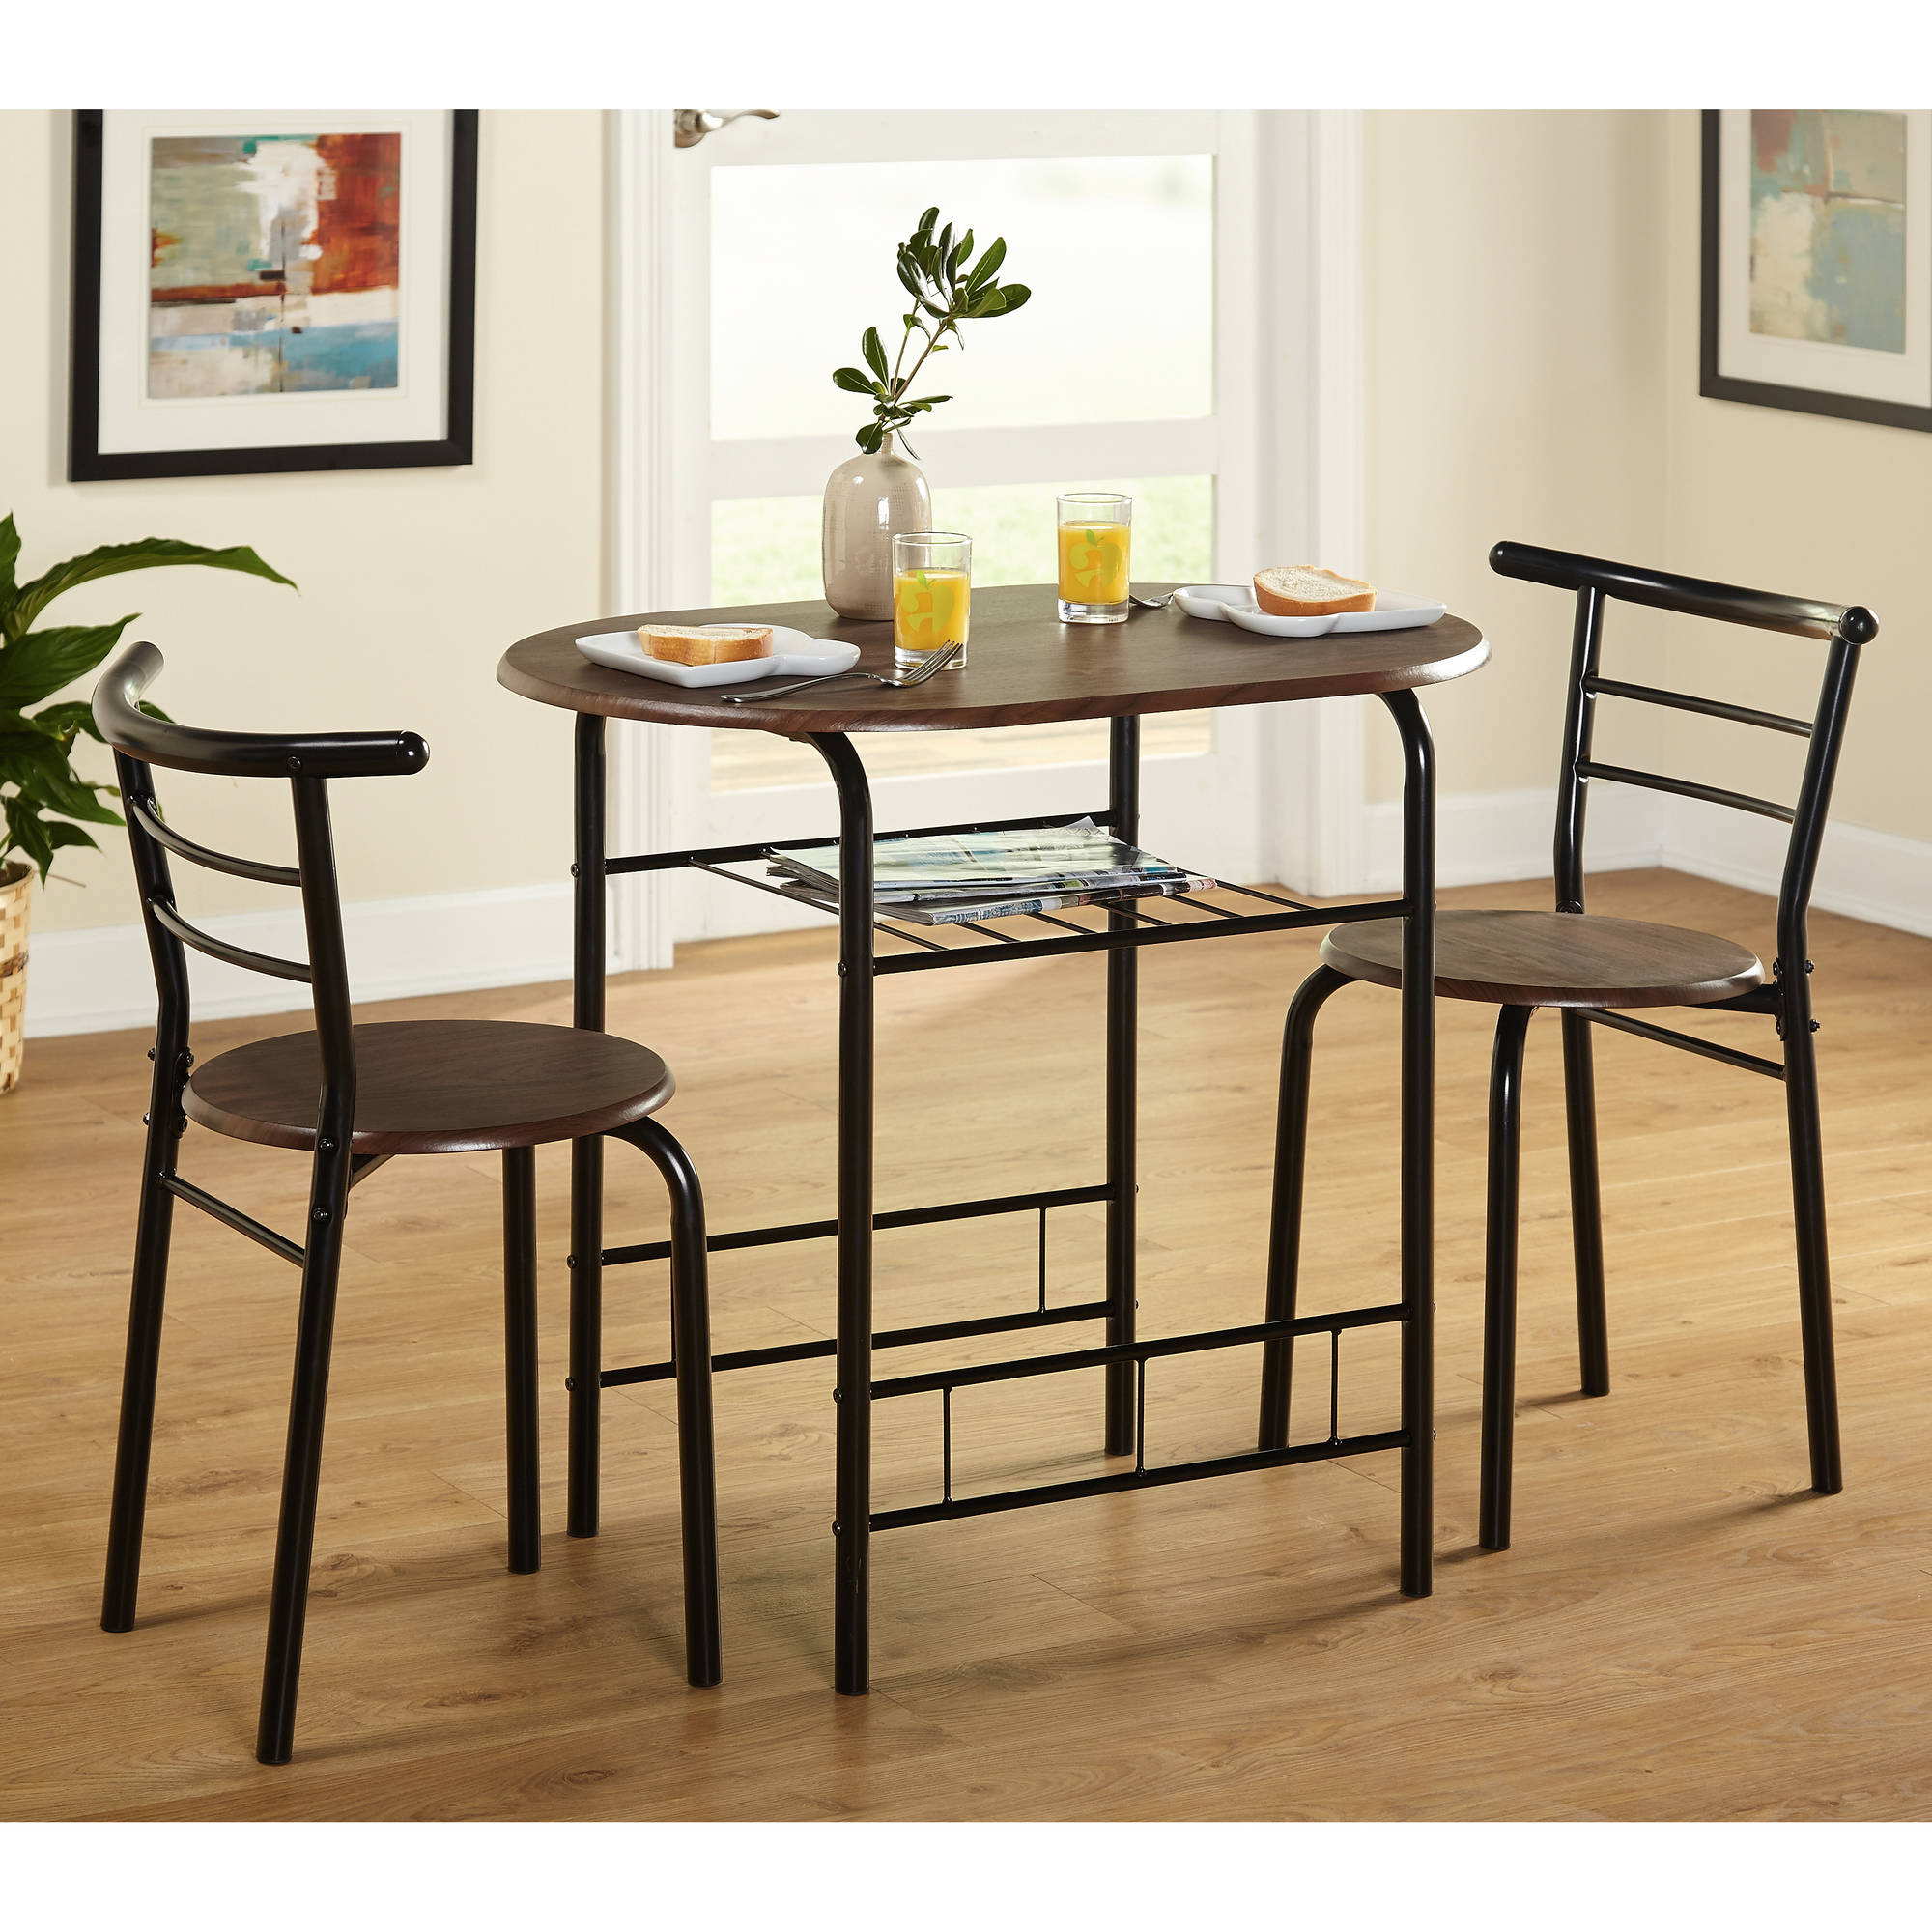 Tms 3 Piece Bistro Dining Set Throughout Most Recent 5 Piece Breakfast Nook Dining Sets (View 20 of 20)